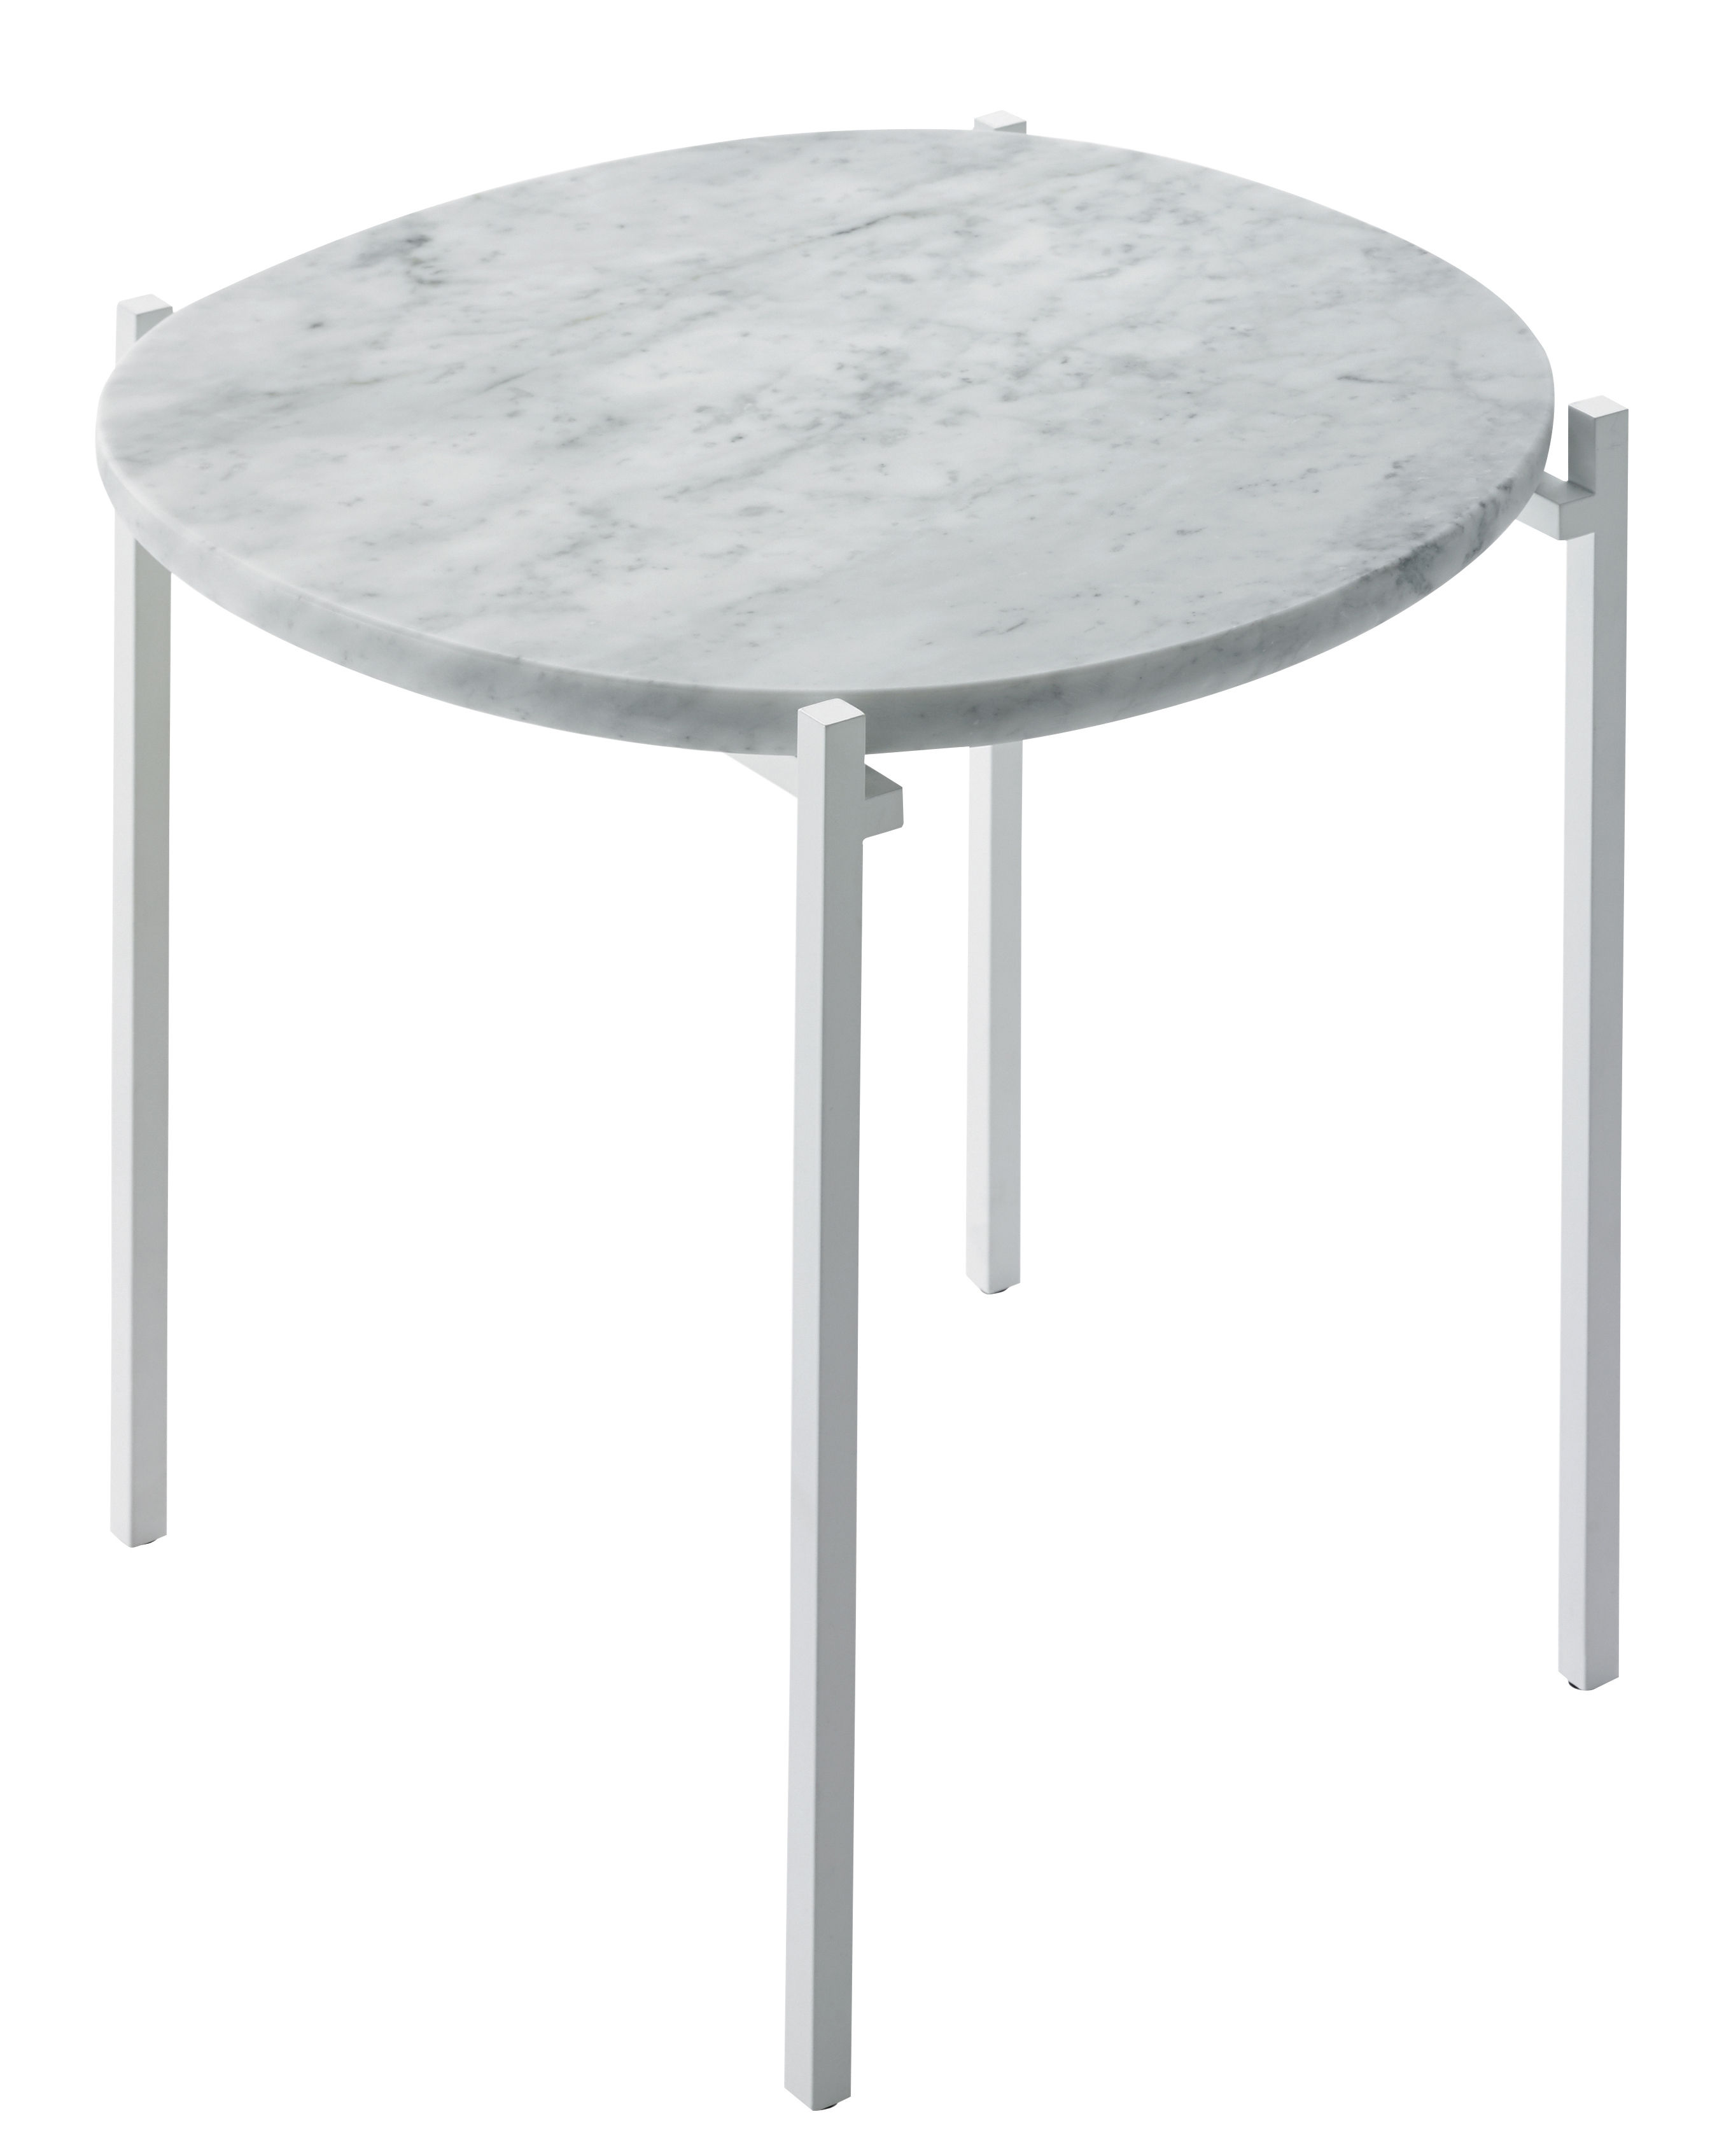 Furniture - Coffee Tables - Niobe End table - Marble/ 48 x 46 cm by Zanotta - White marble / White leg - Varnished steel, White Carrara marble